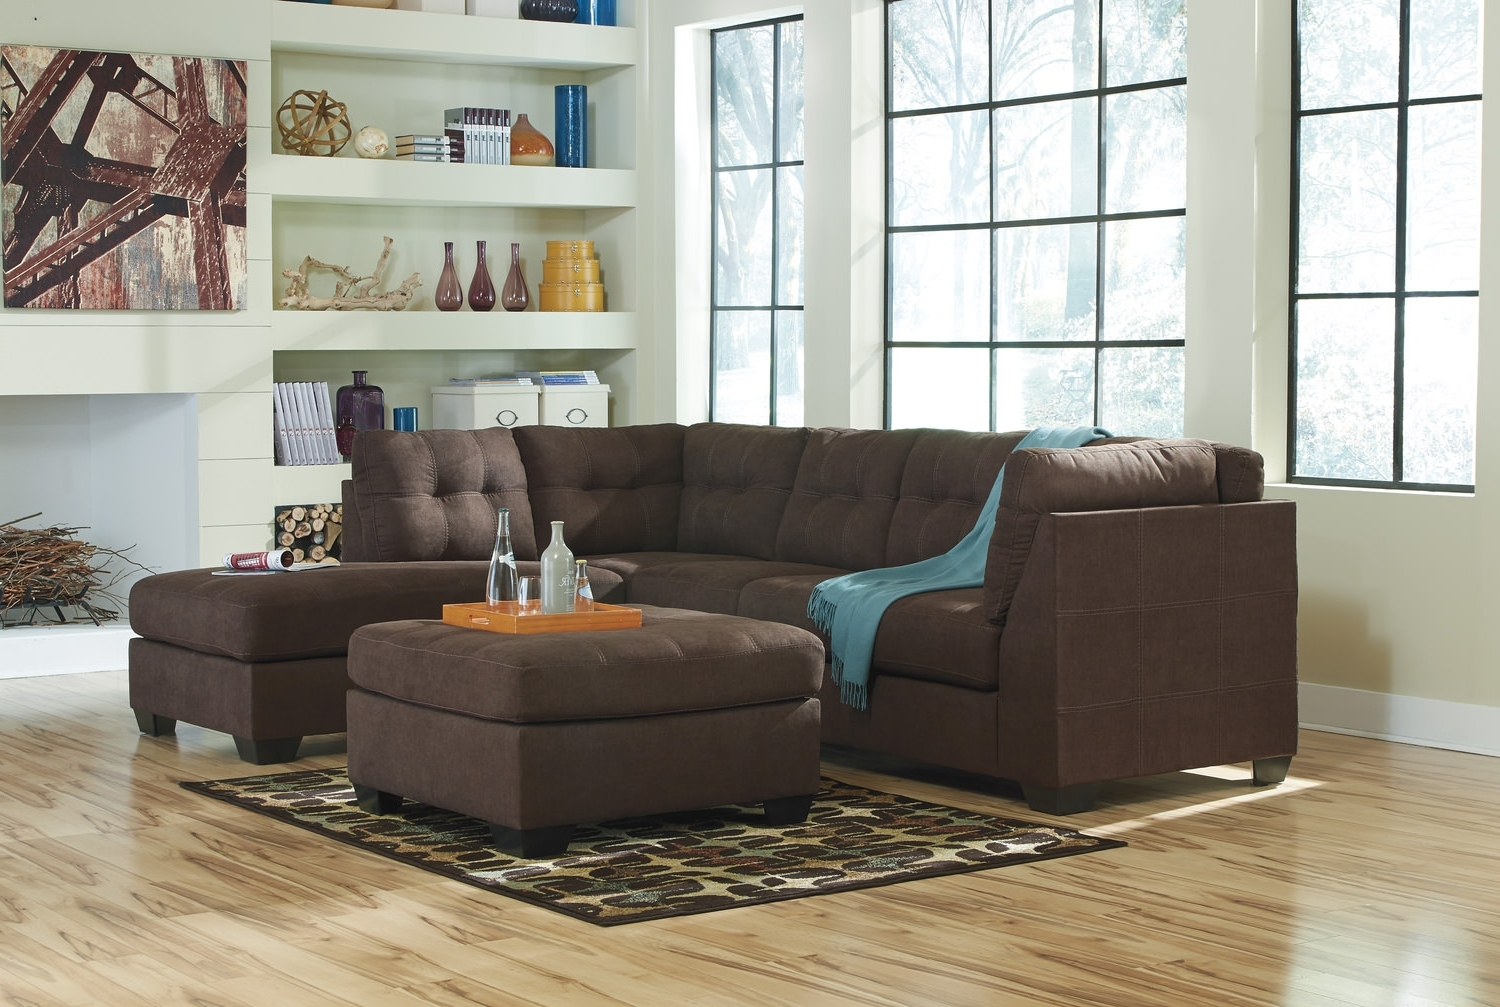 Crosby 2 Piece Modular Sectional At Hom Furniture (View 15 of 15)